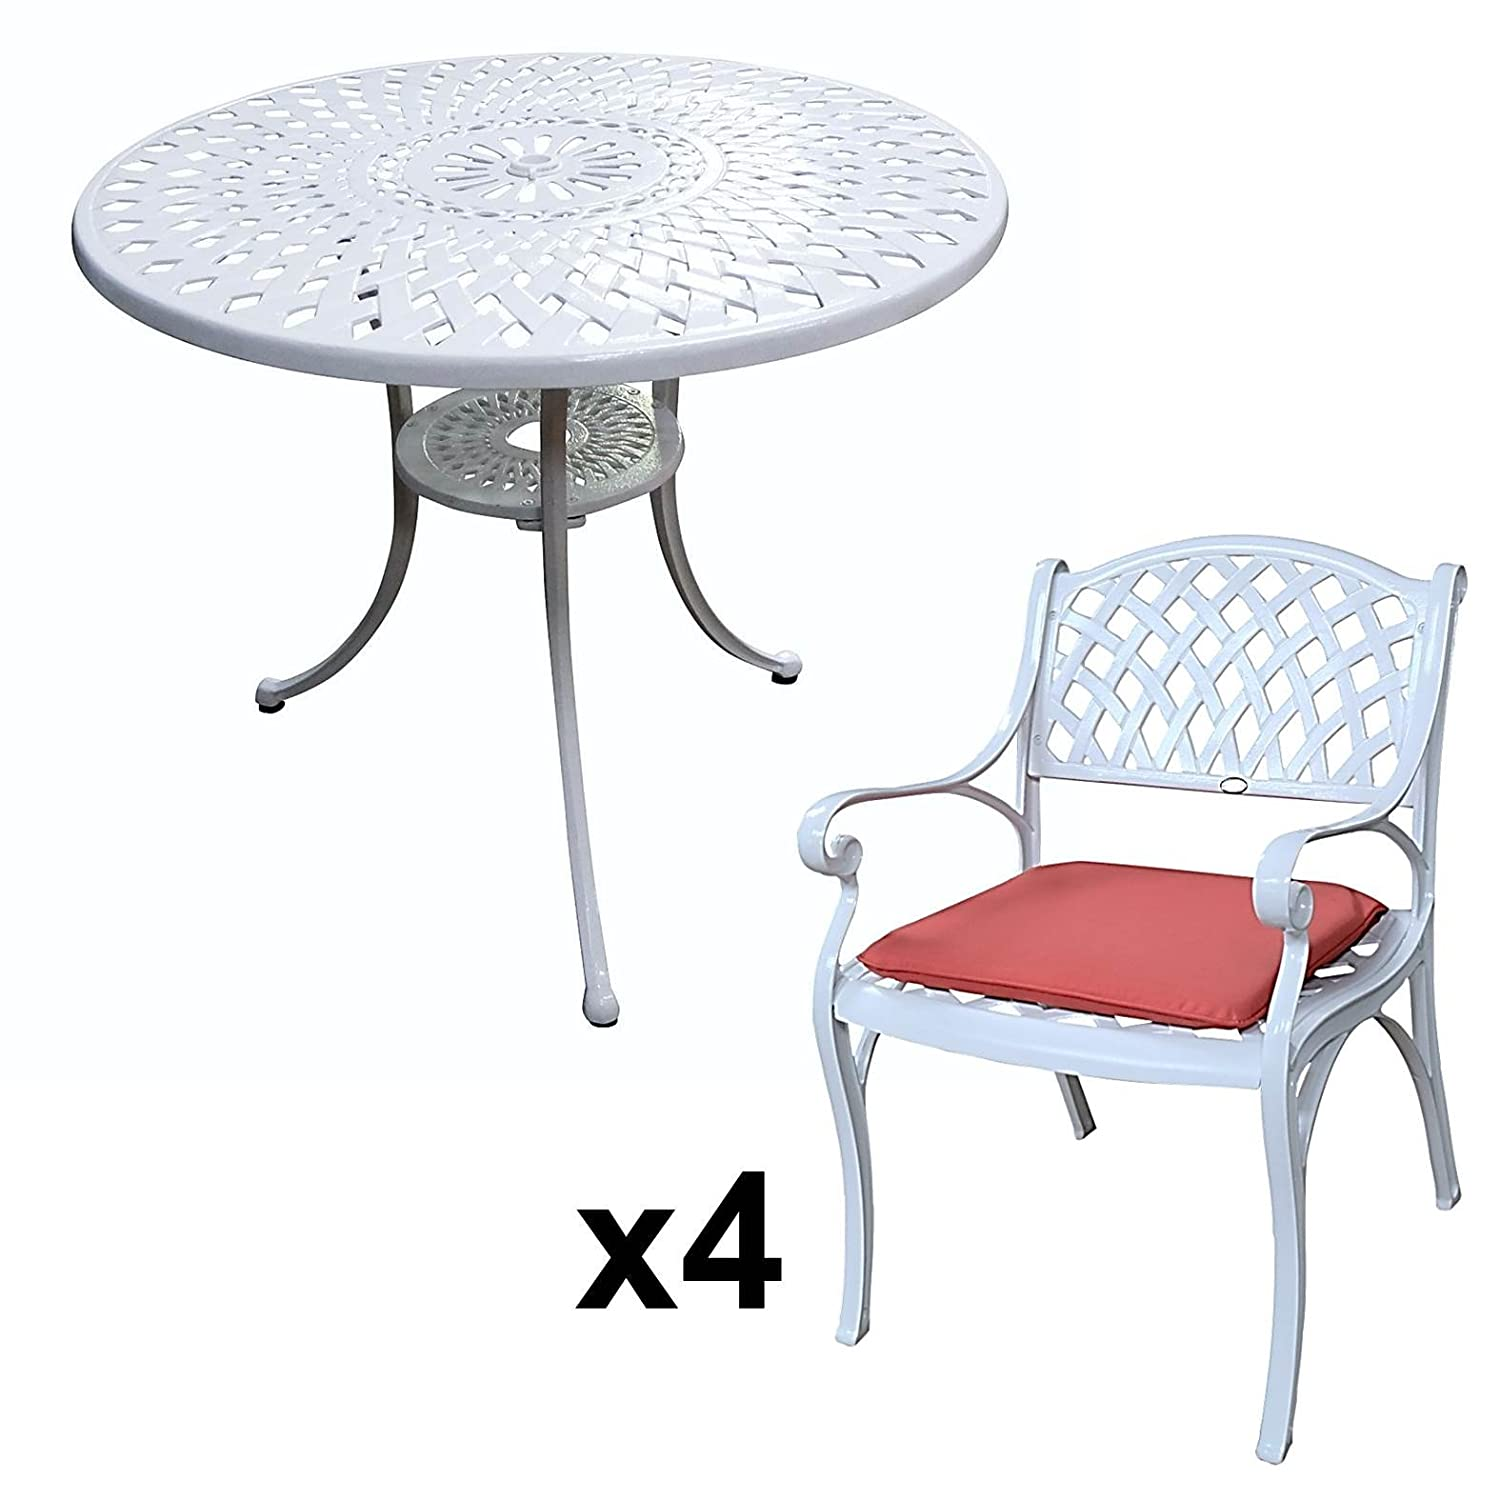 lazy susan mia 90 cm runder gartentisch mit 4 st hlen gartenm bel set aus metall wei kate. Black Bedroom Furniture Sets. Home Design Ideas